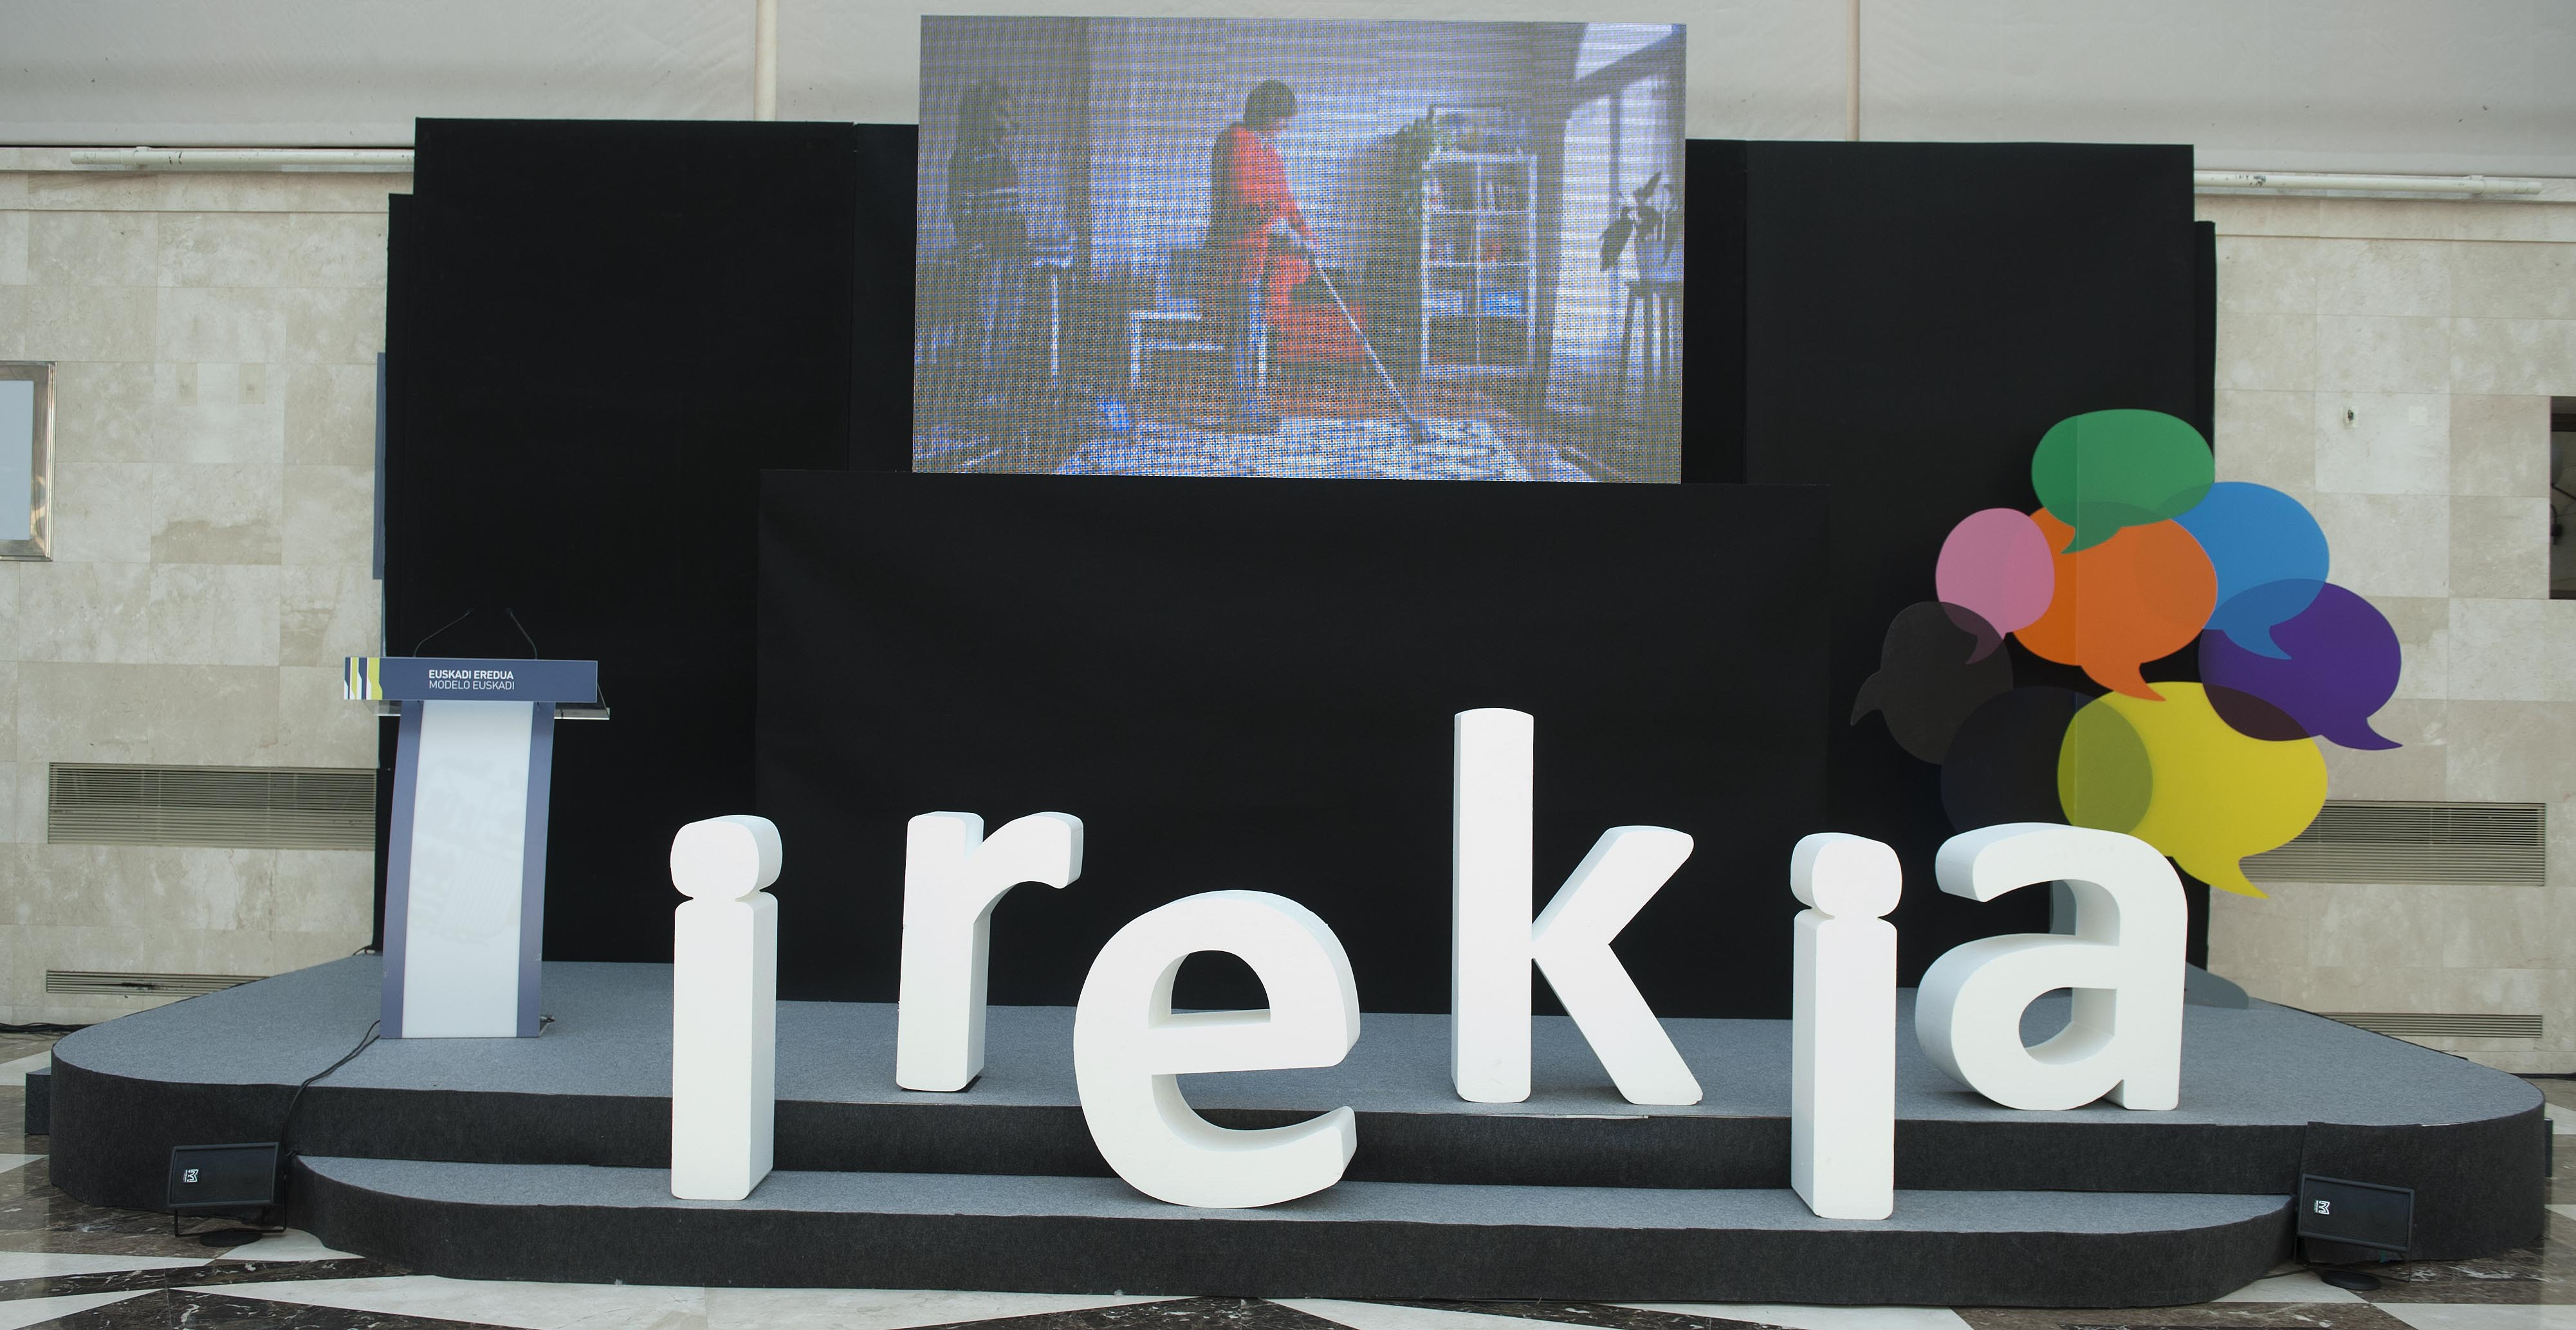 Irekia facilitates dialogue between politicians and citizens